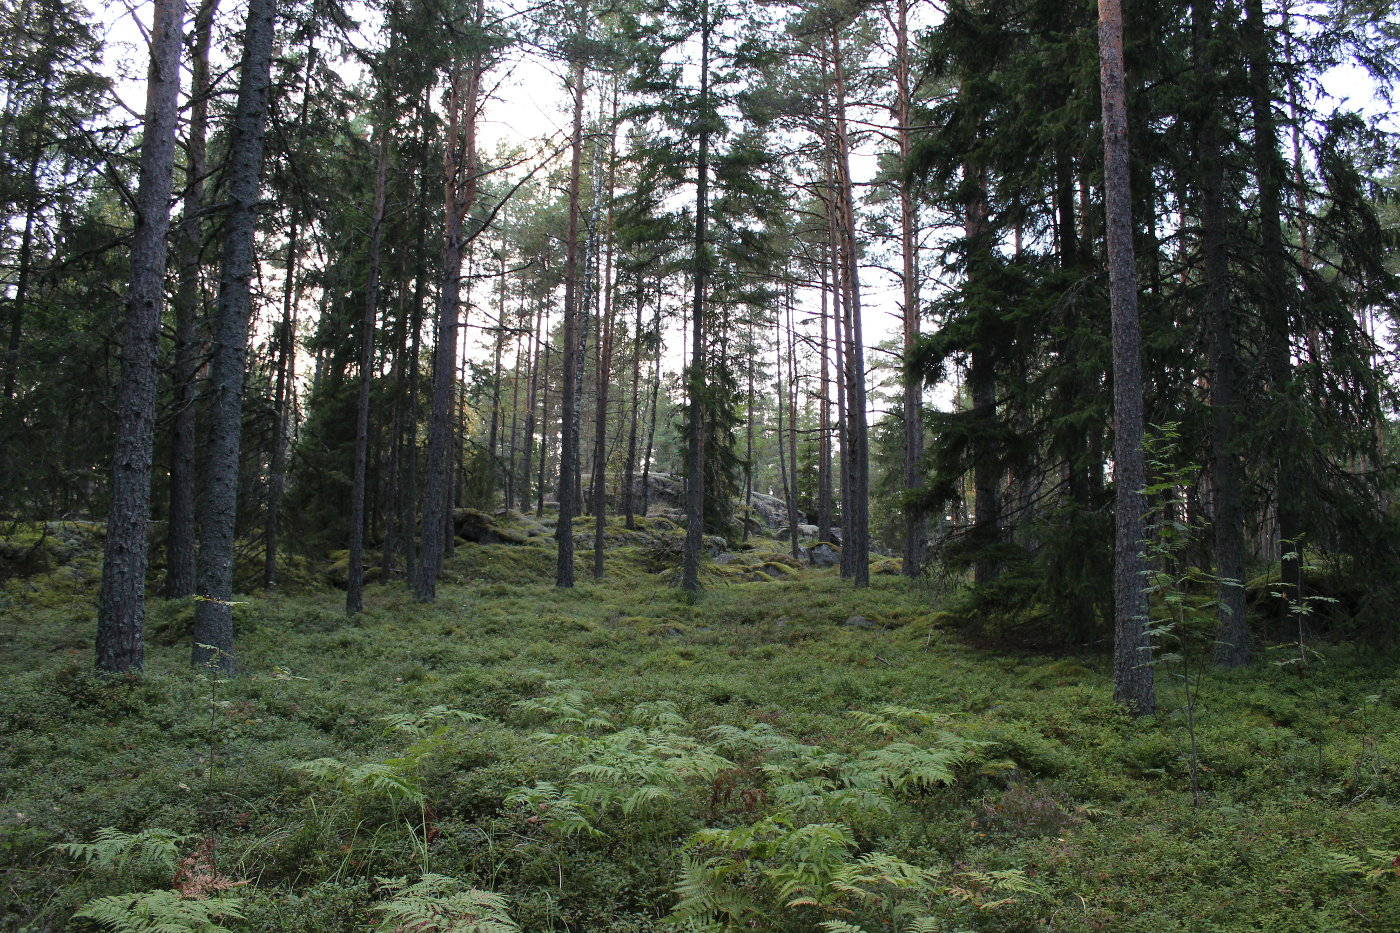 Forest.